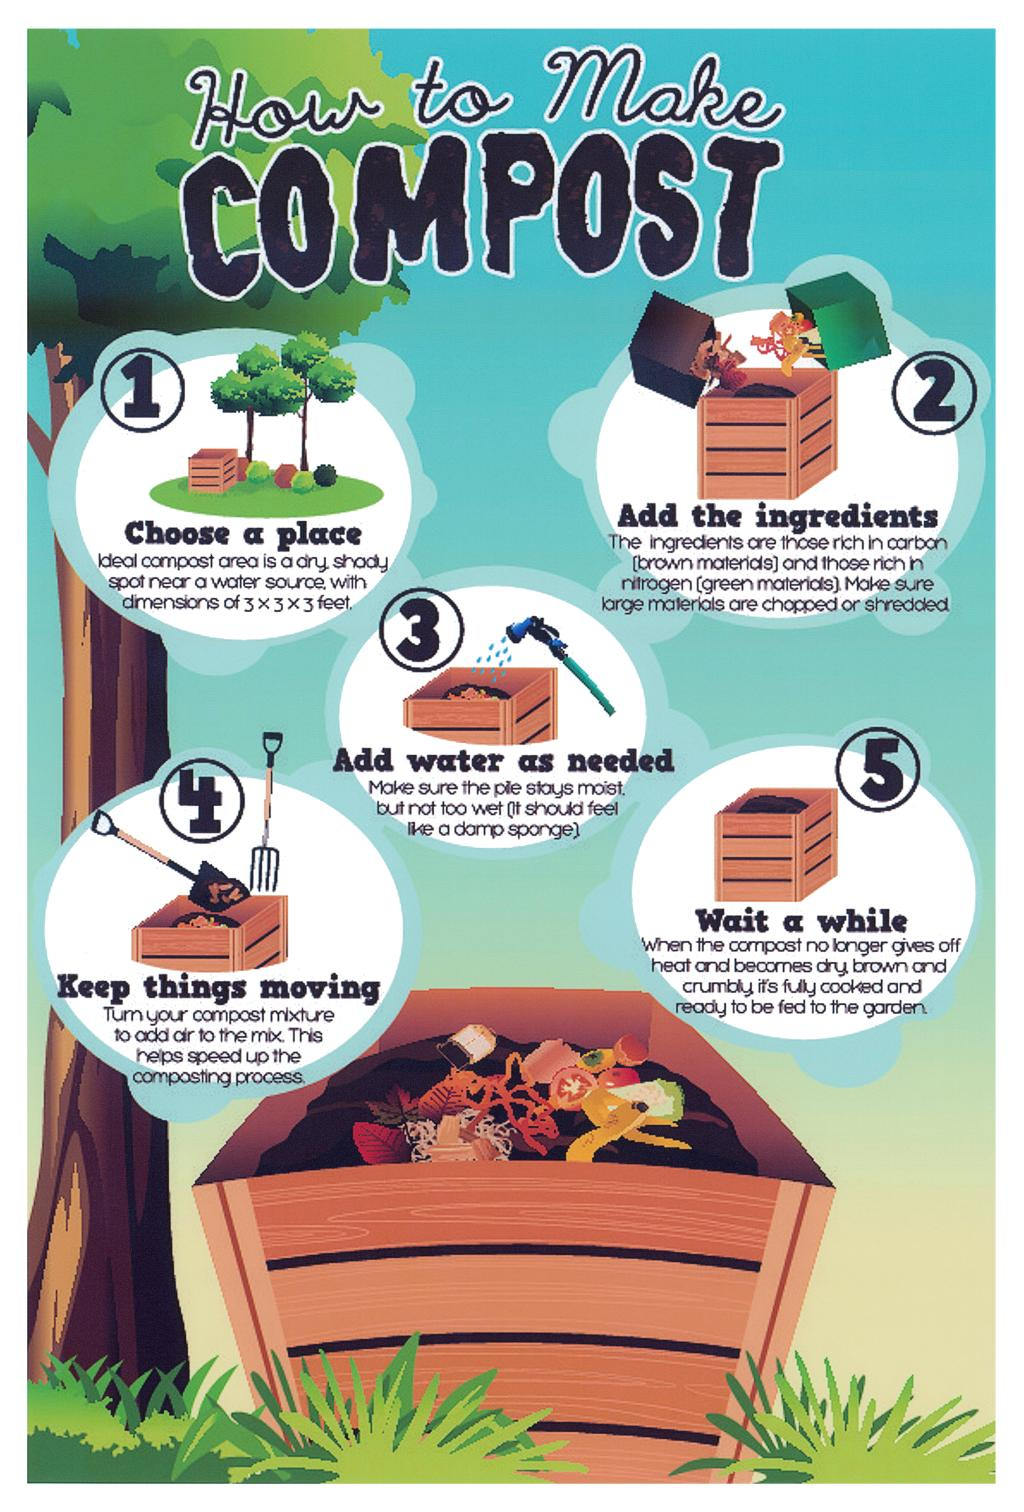 This image describes 5 steps of how to make compost